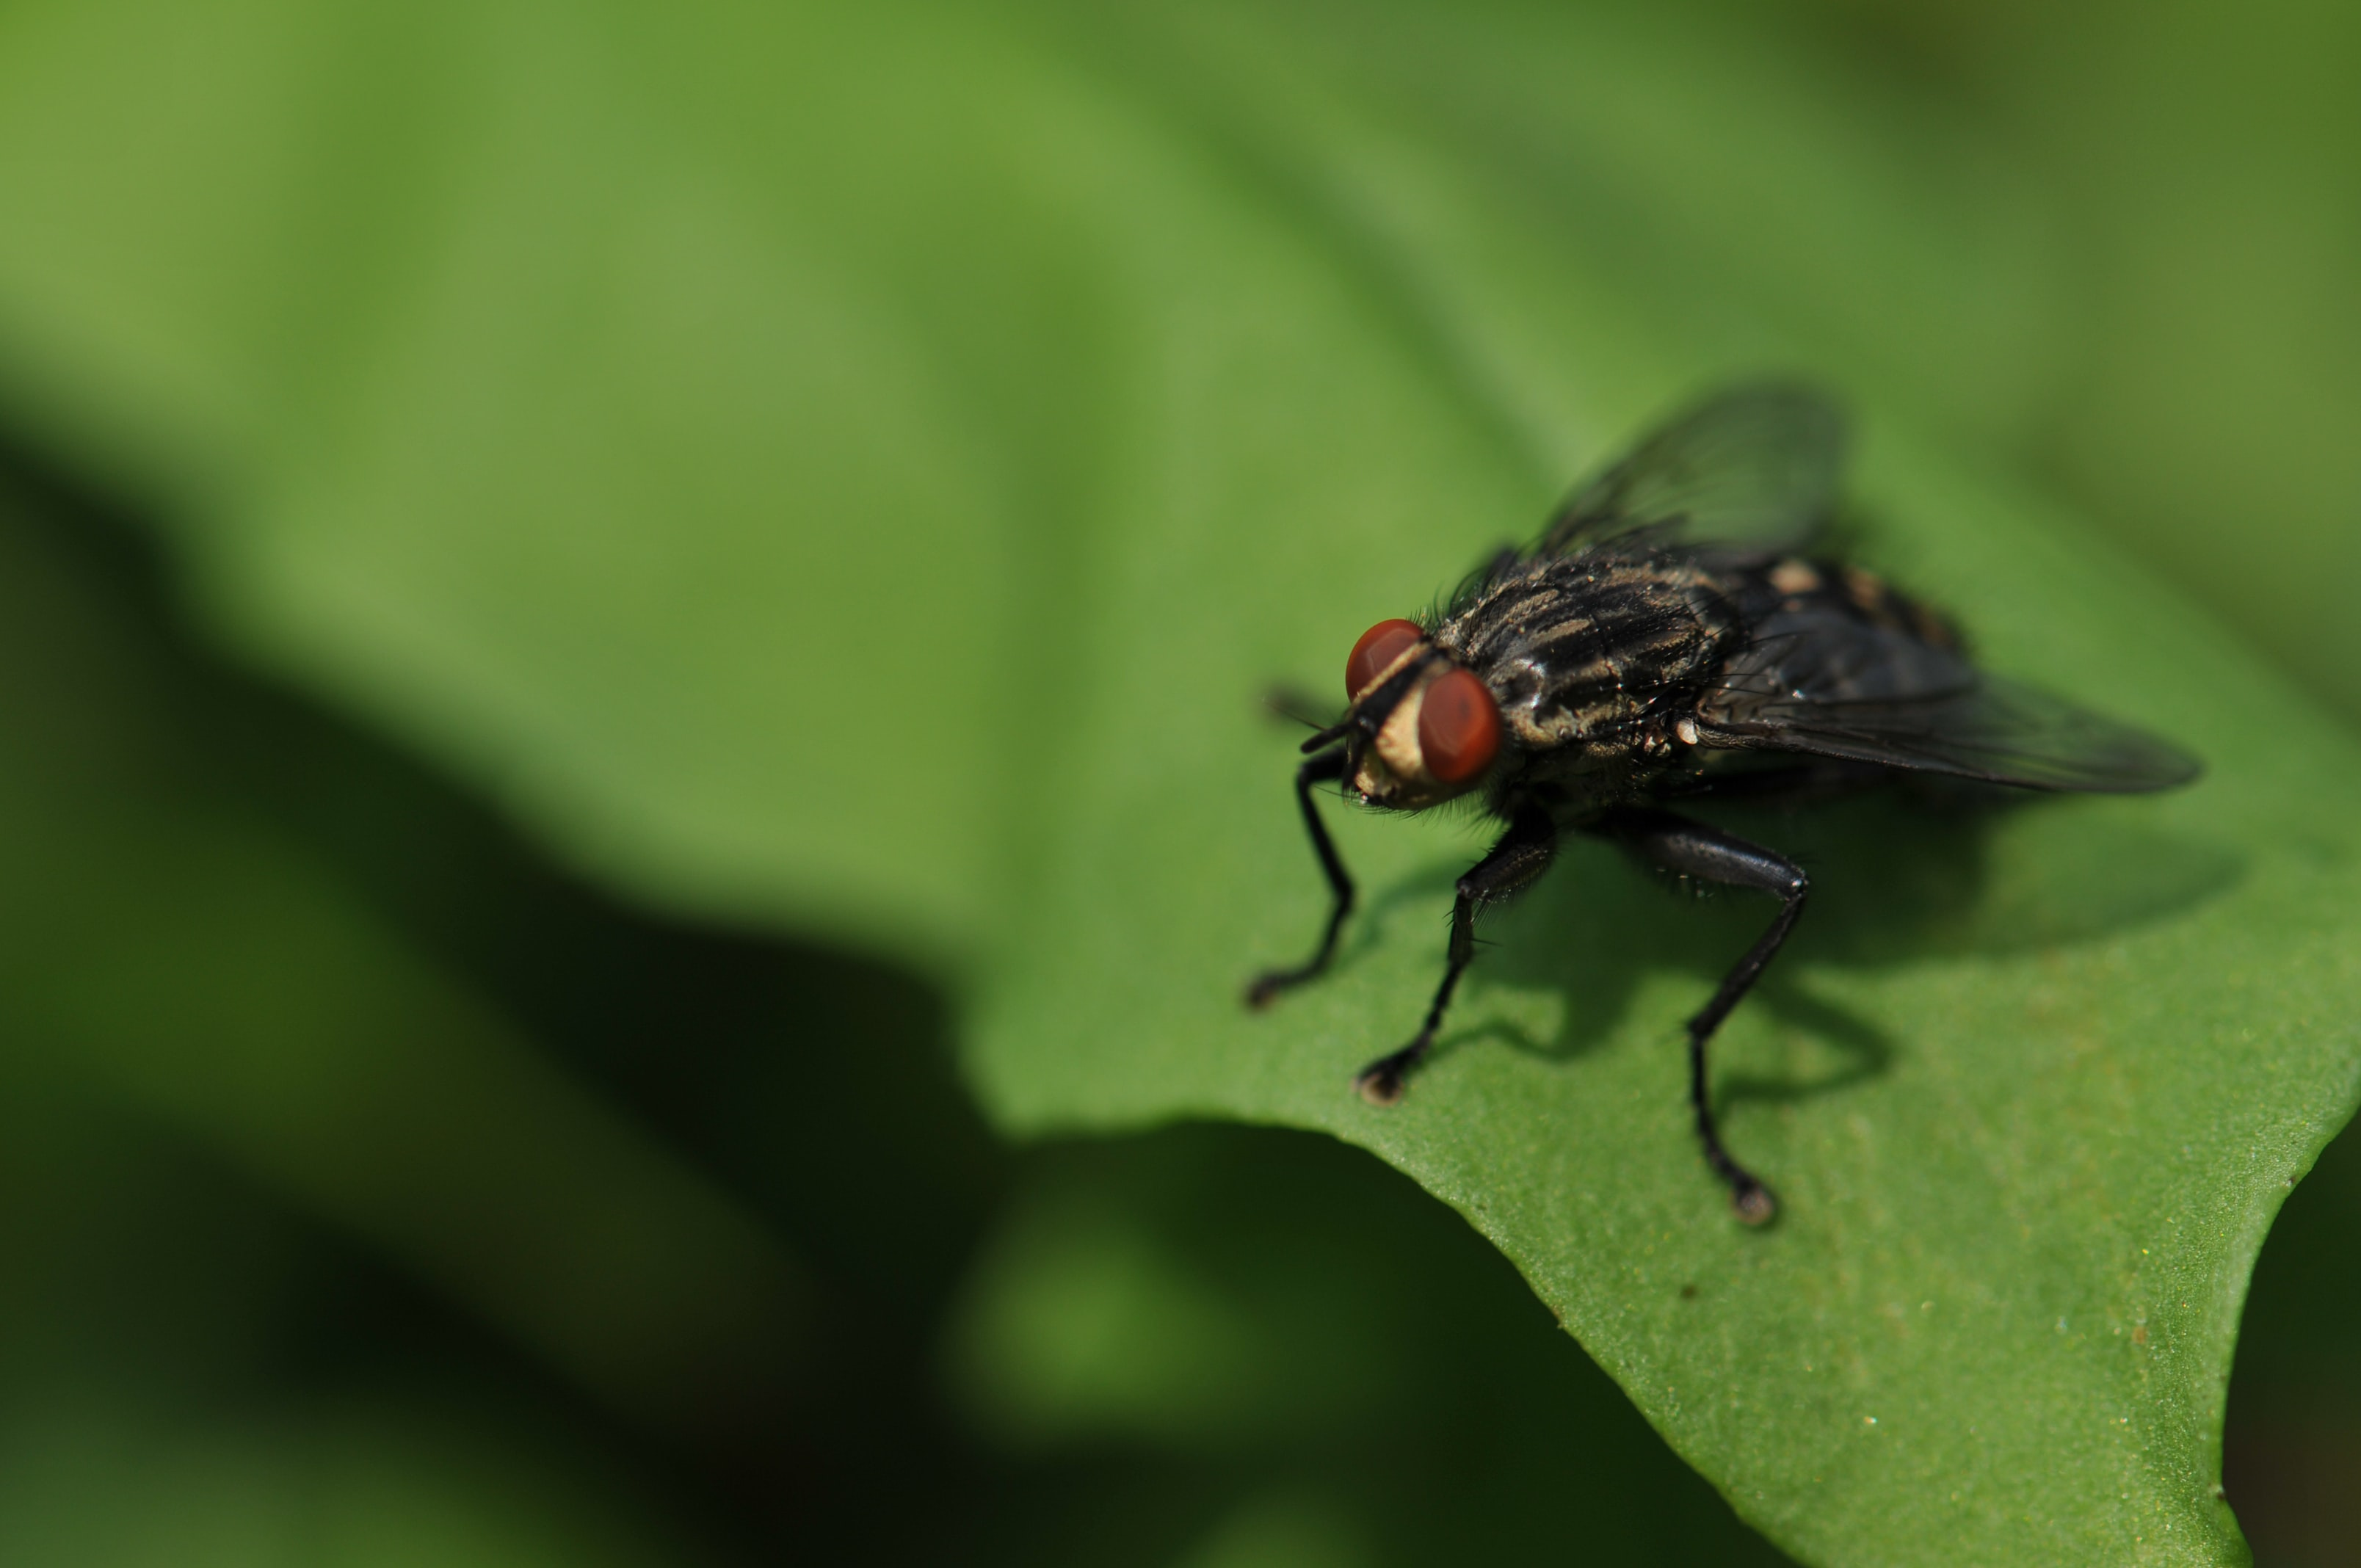 Macro of a fly with red eyes resting on a leaf